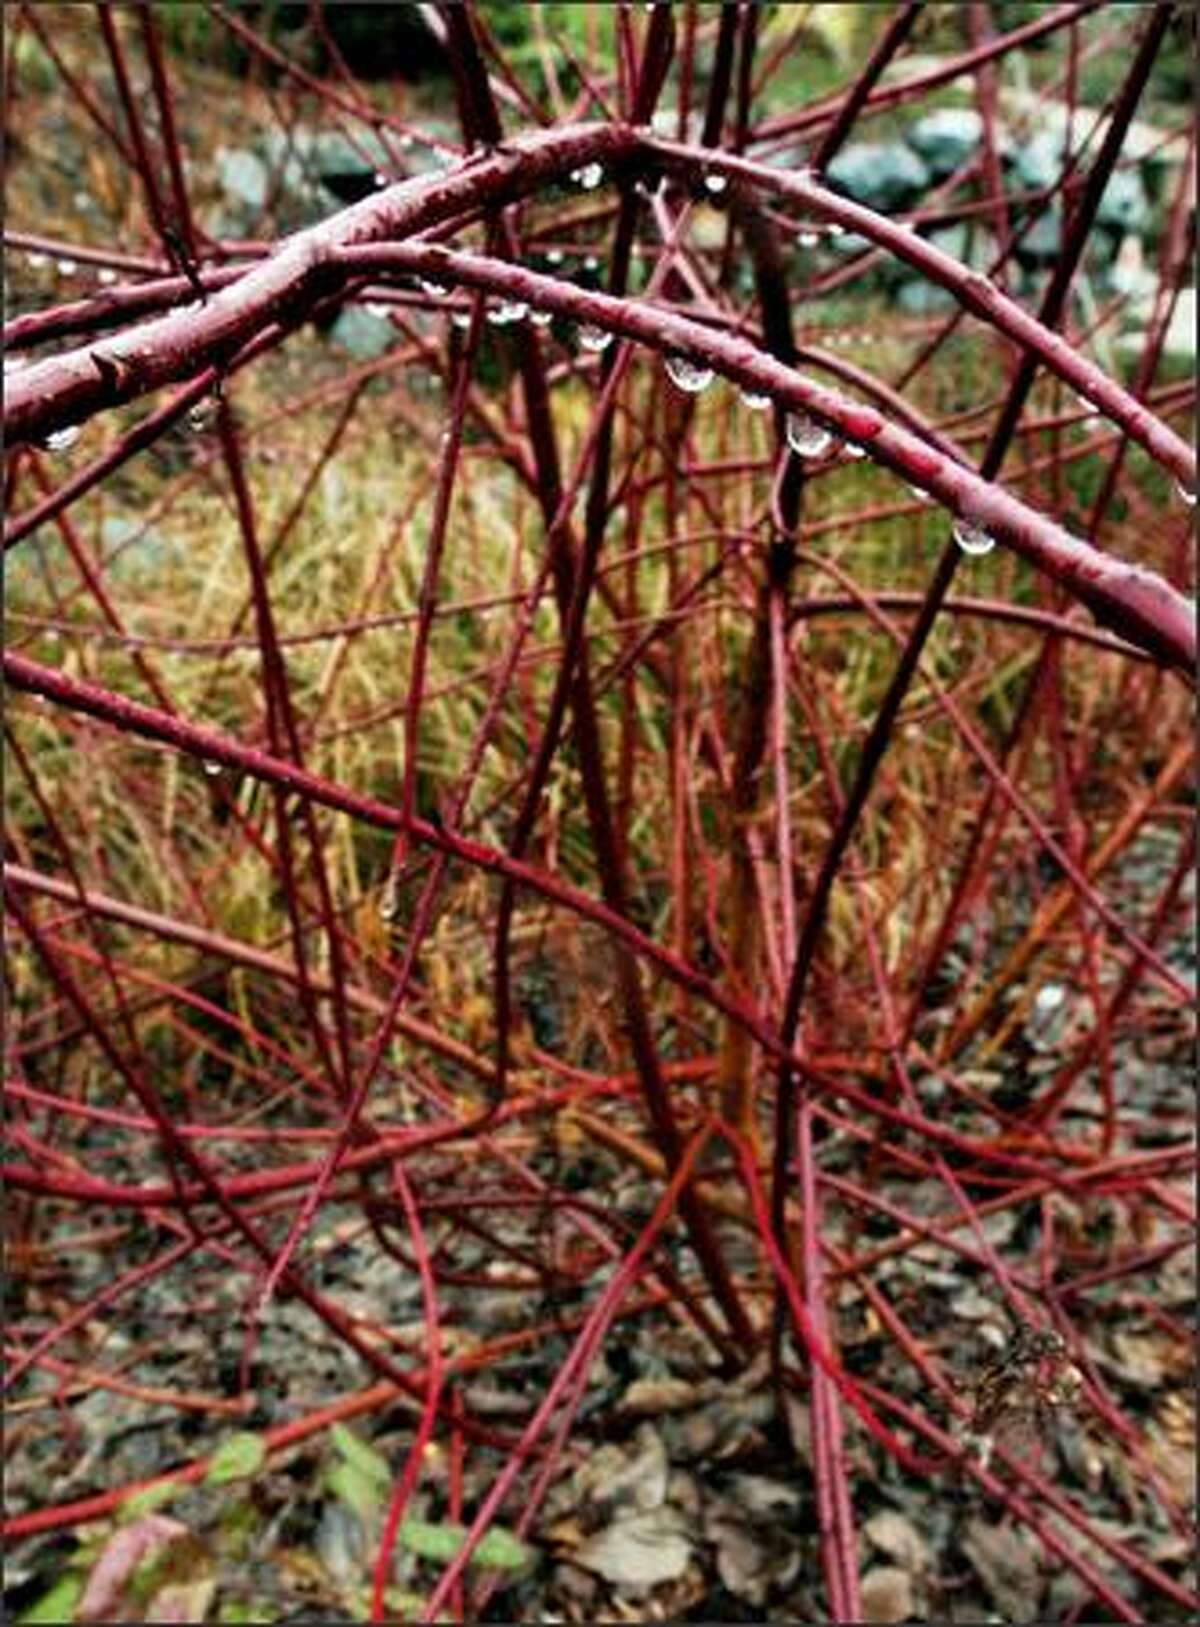 Good rain garden plants, such as the native redtwig dogwood, can survive soil that is rain-saturated for several months of the year and dry during the summer.